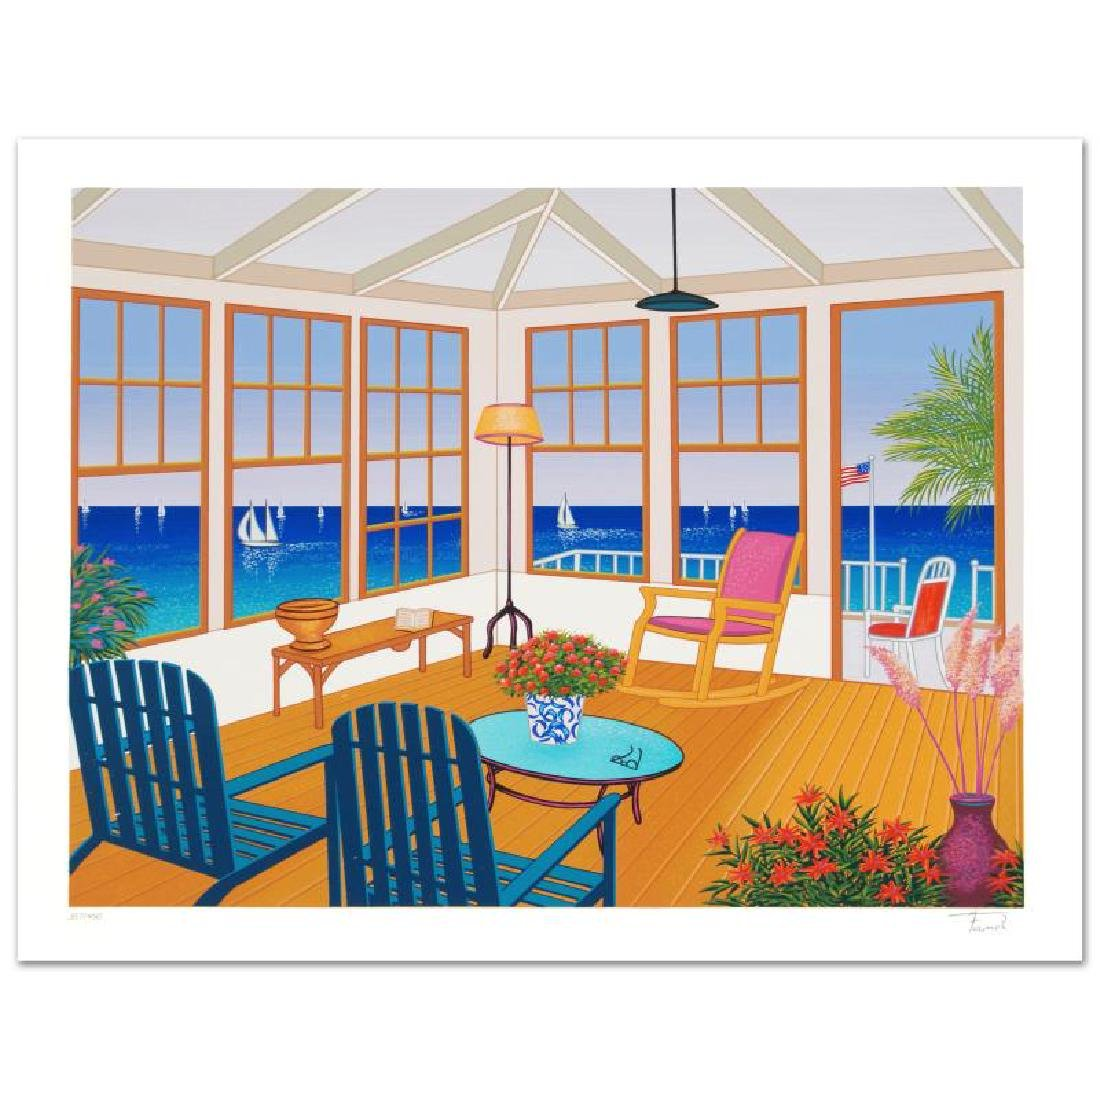 New England Villa Limited Edition Serigraph by Fanch - 4